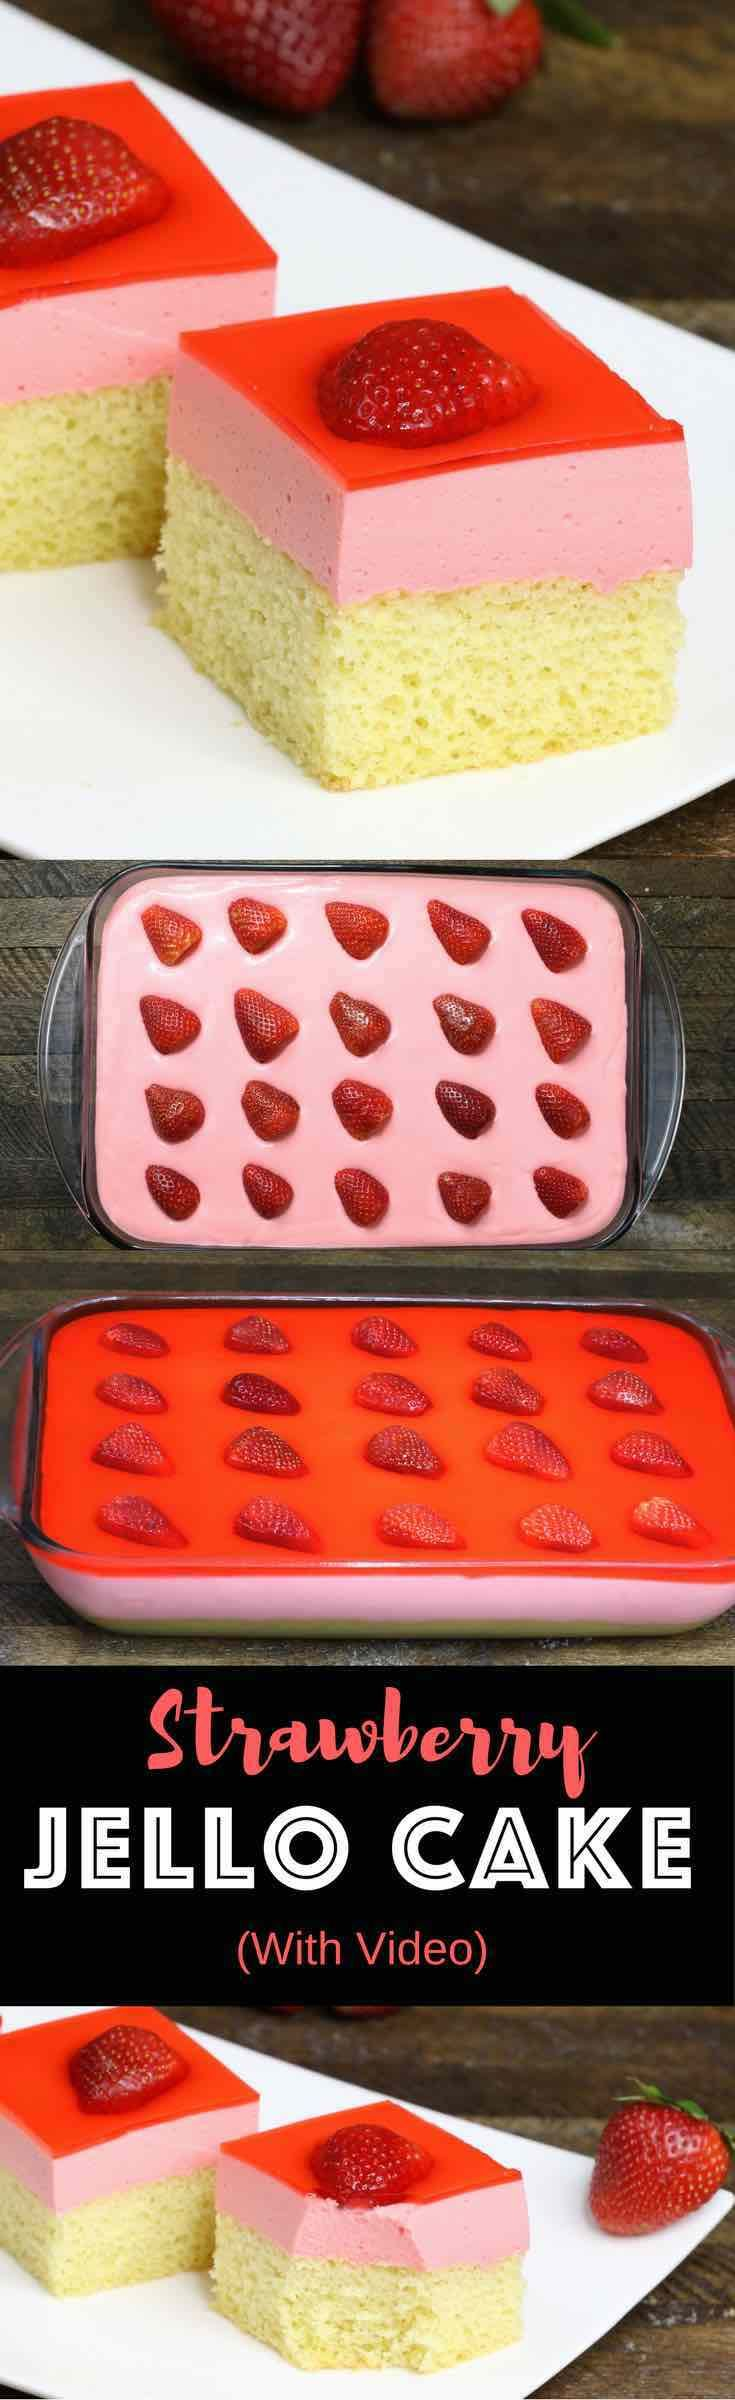 Wow your guests with this amazing Strawberry Jello Cake! A delicious 3-layer dessert to make for Mother's Day, birthday parties or special occasions.